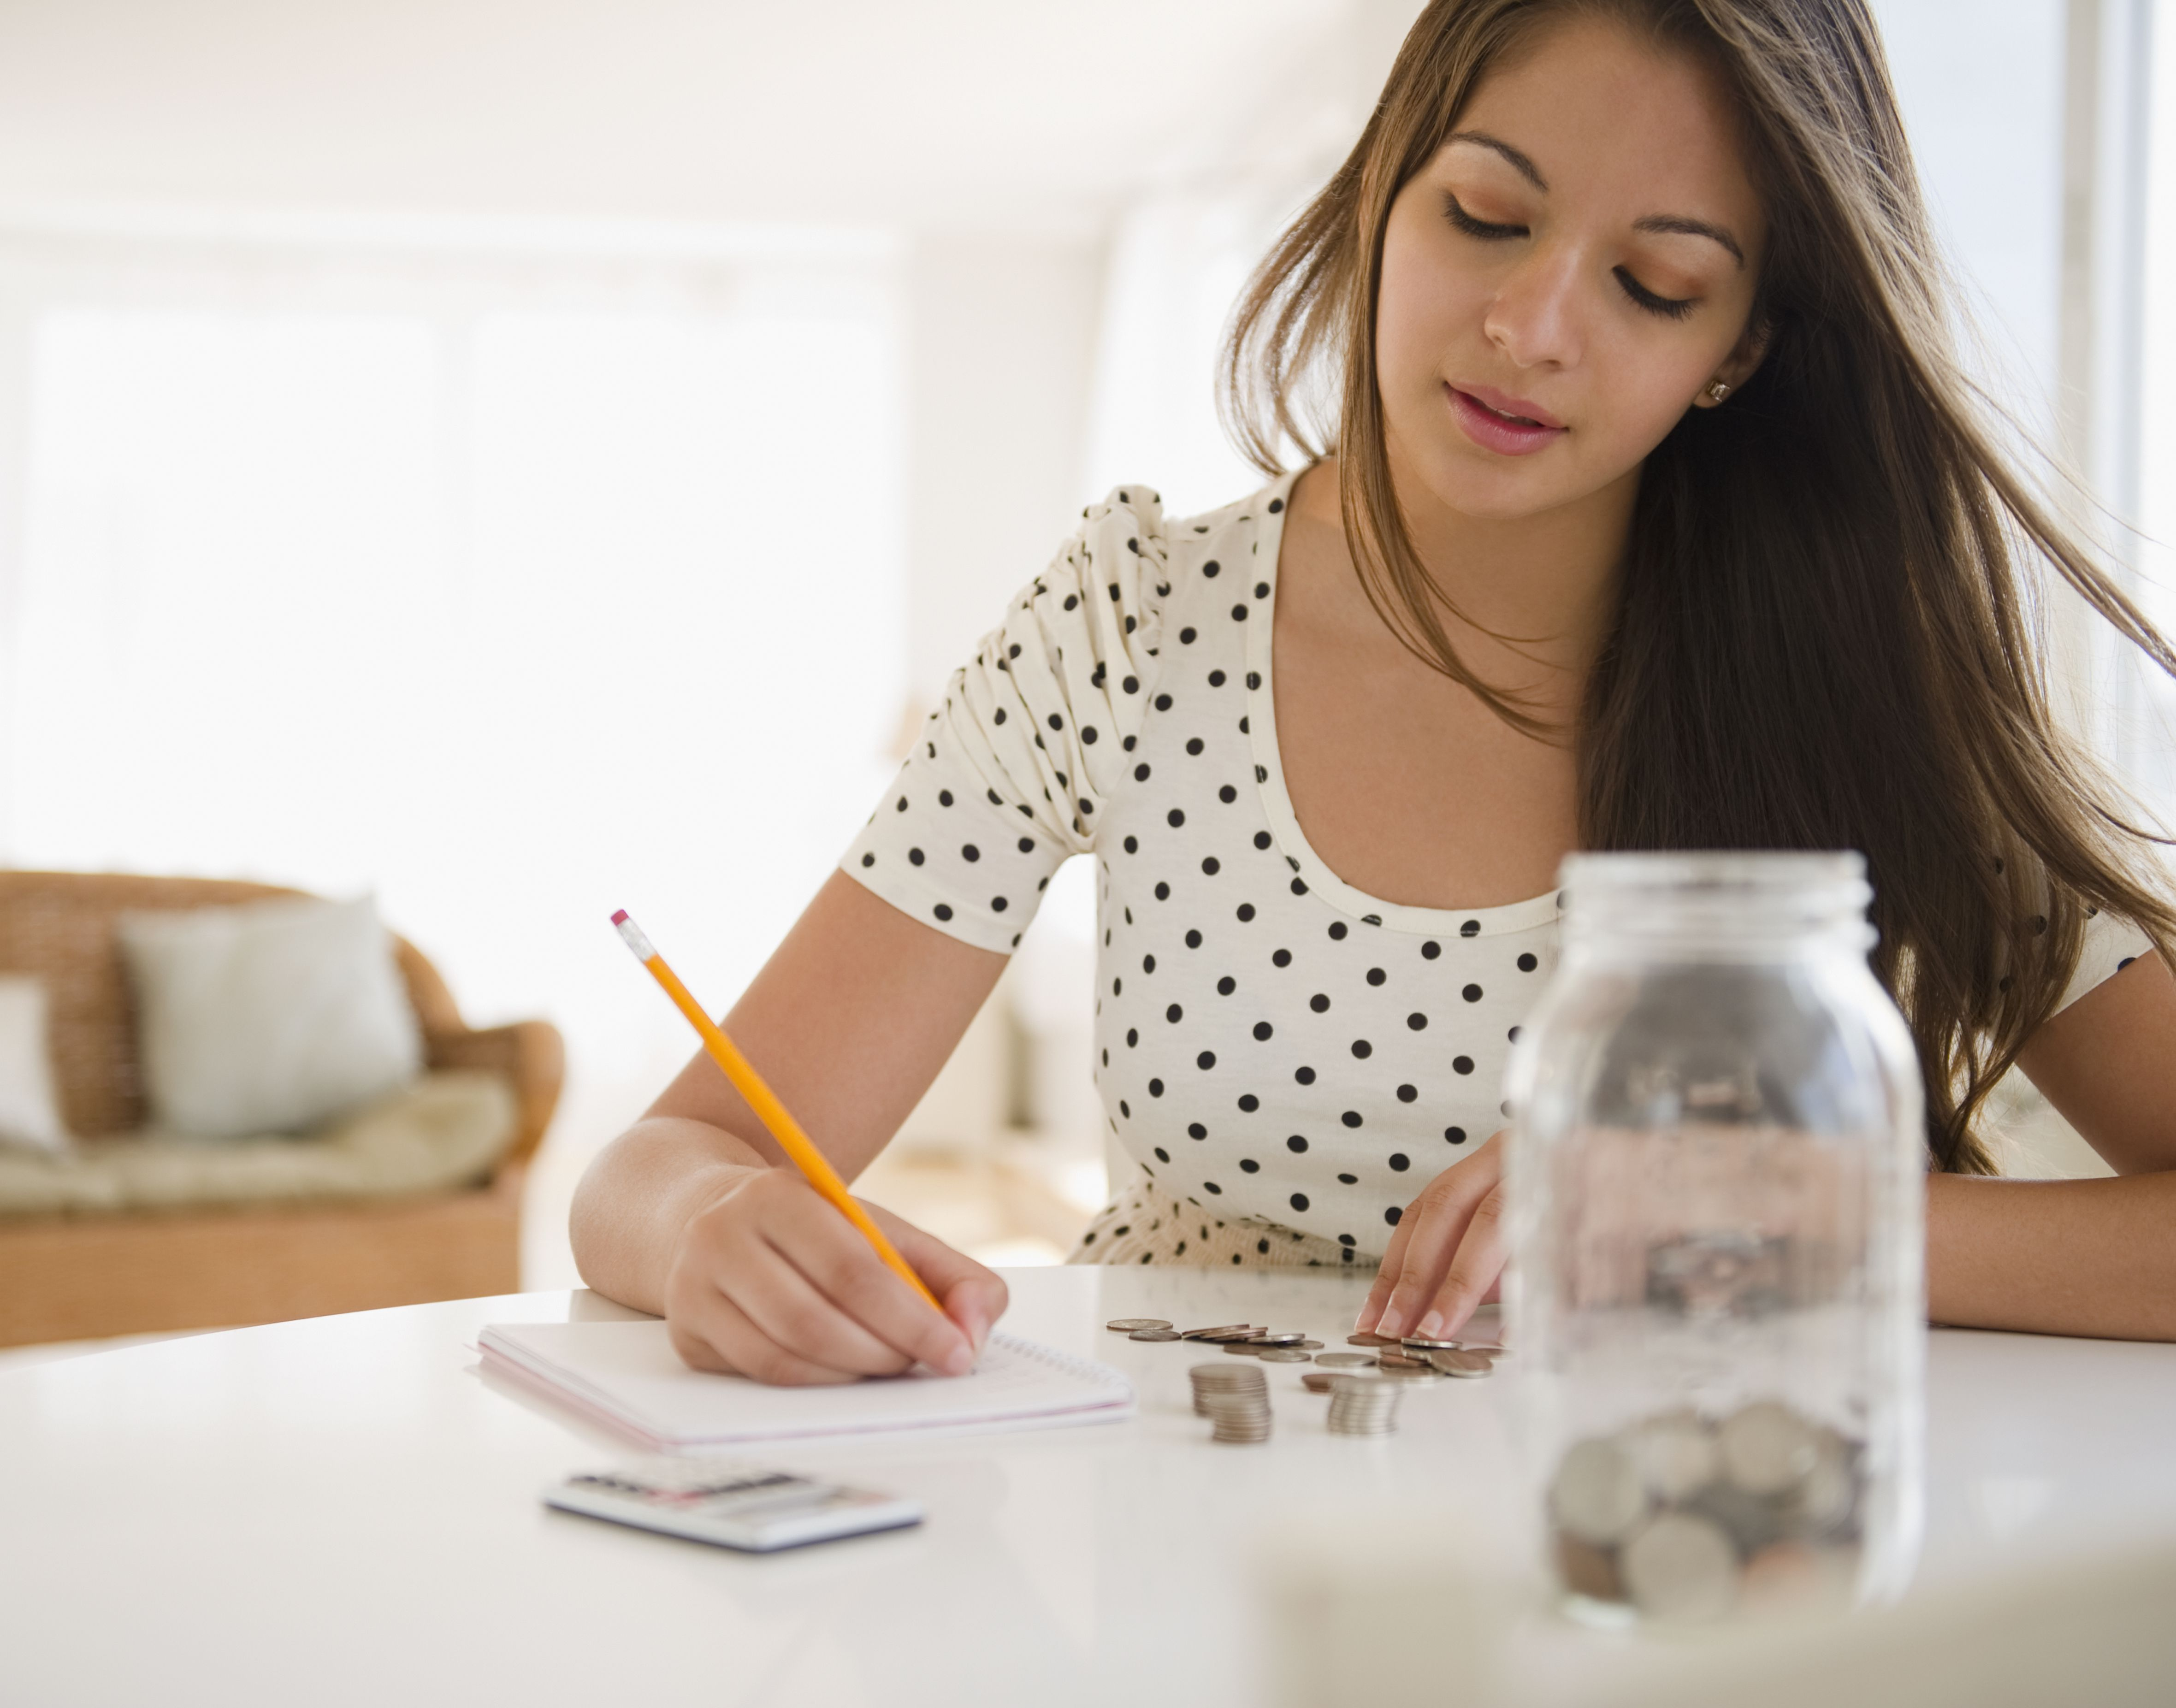 woman counting coins and saving change in a jar